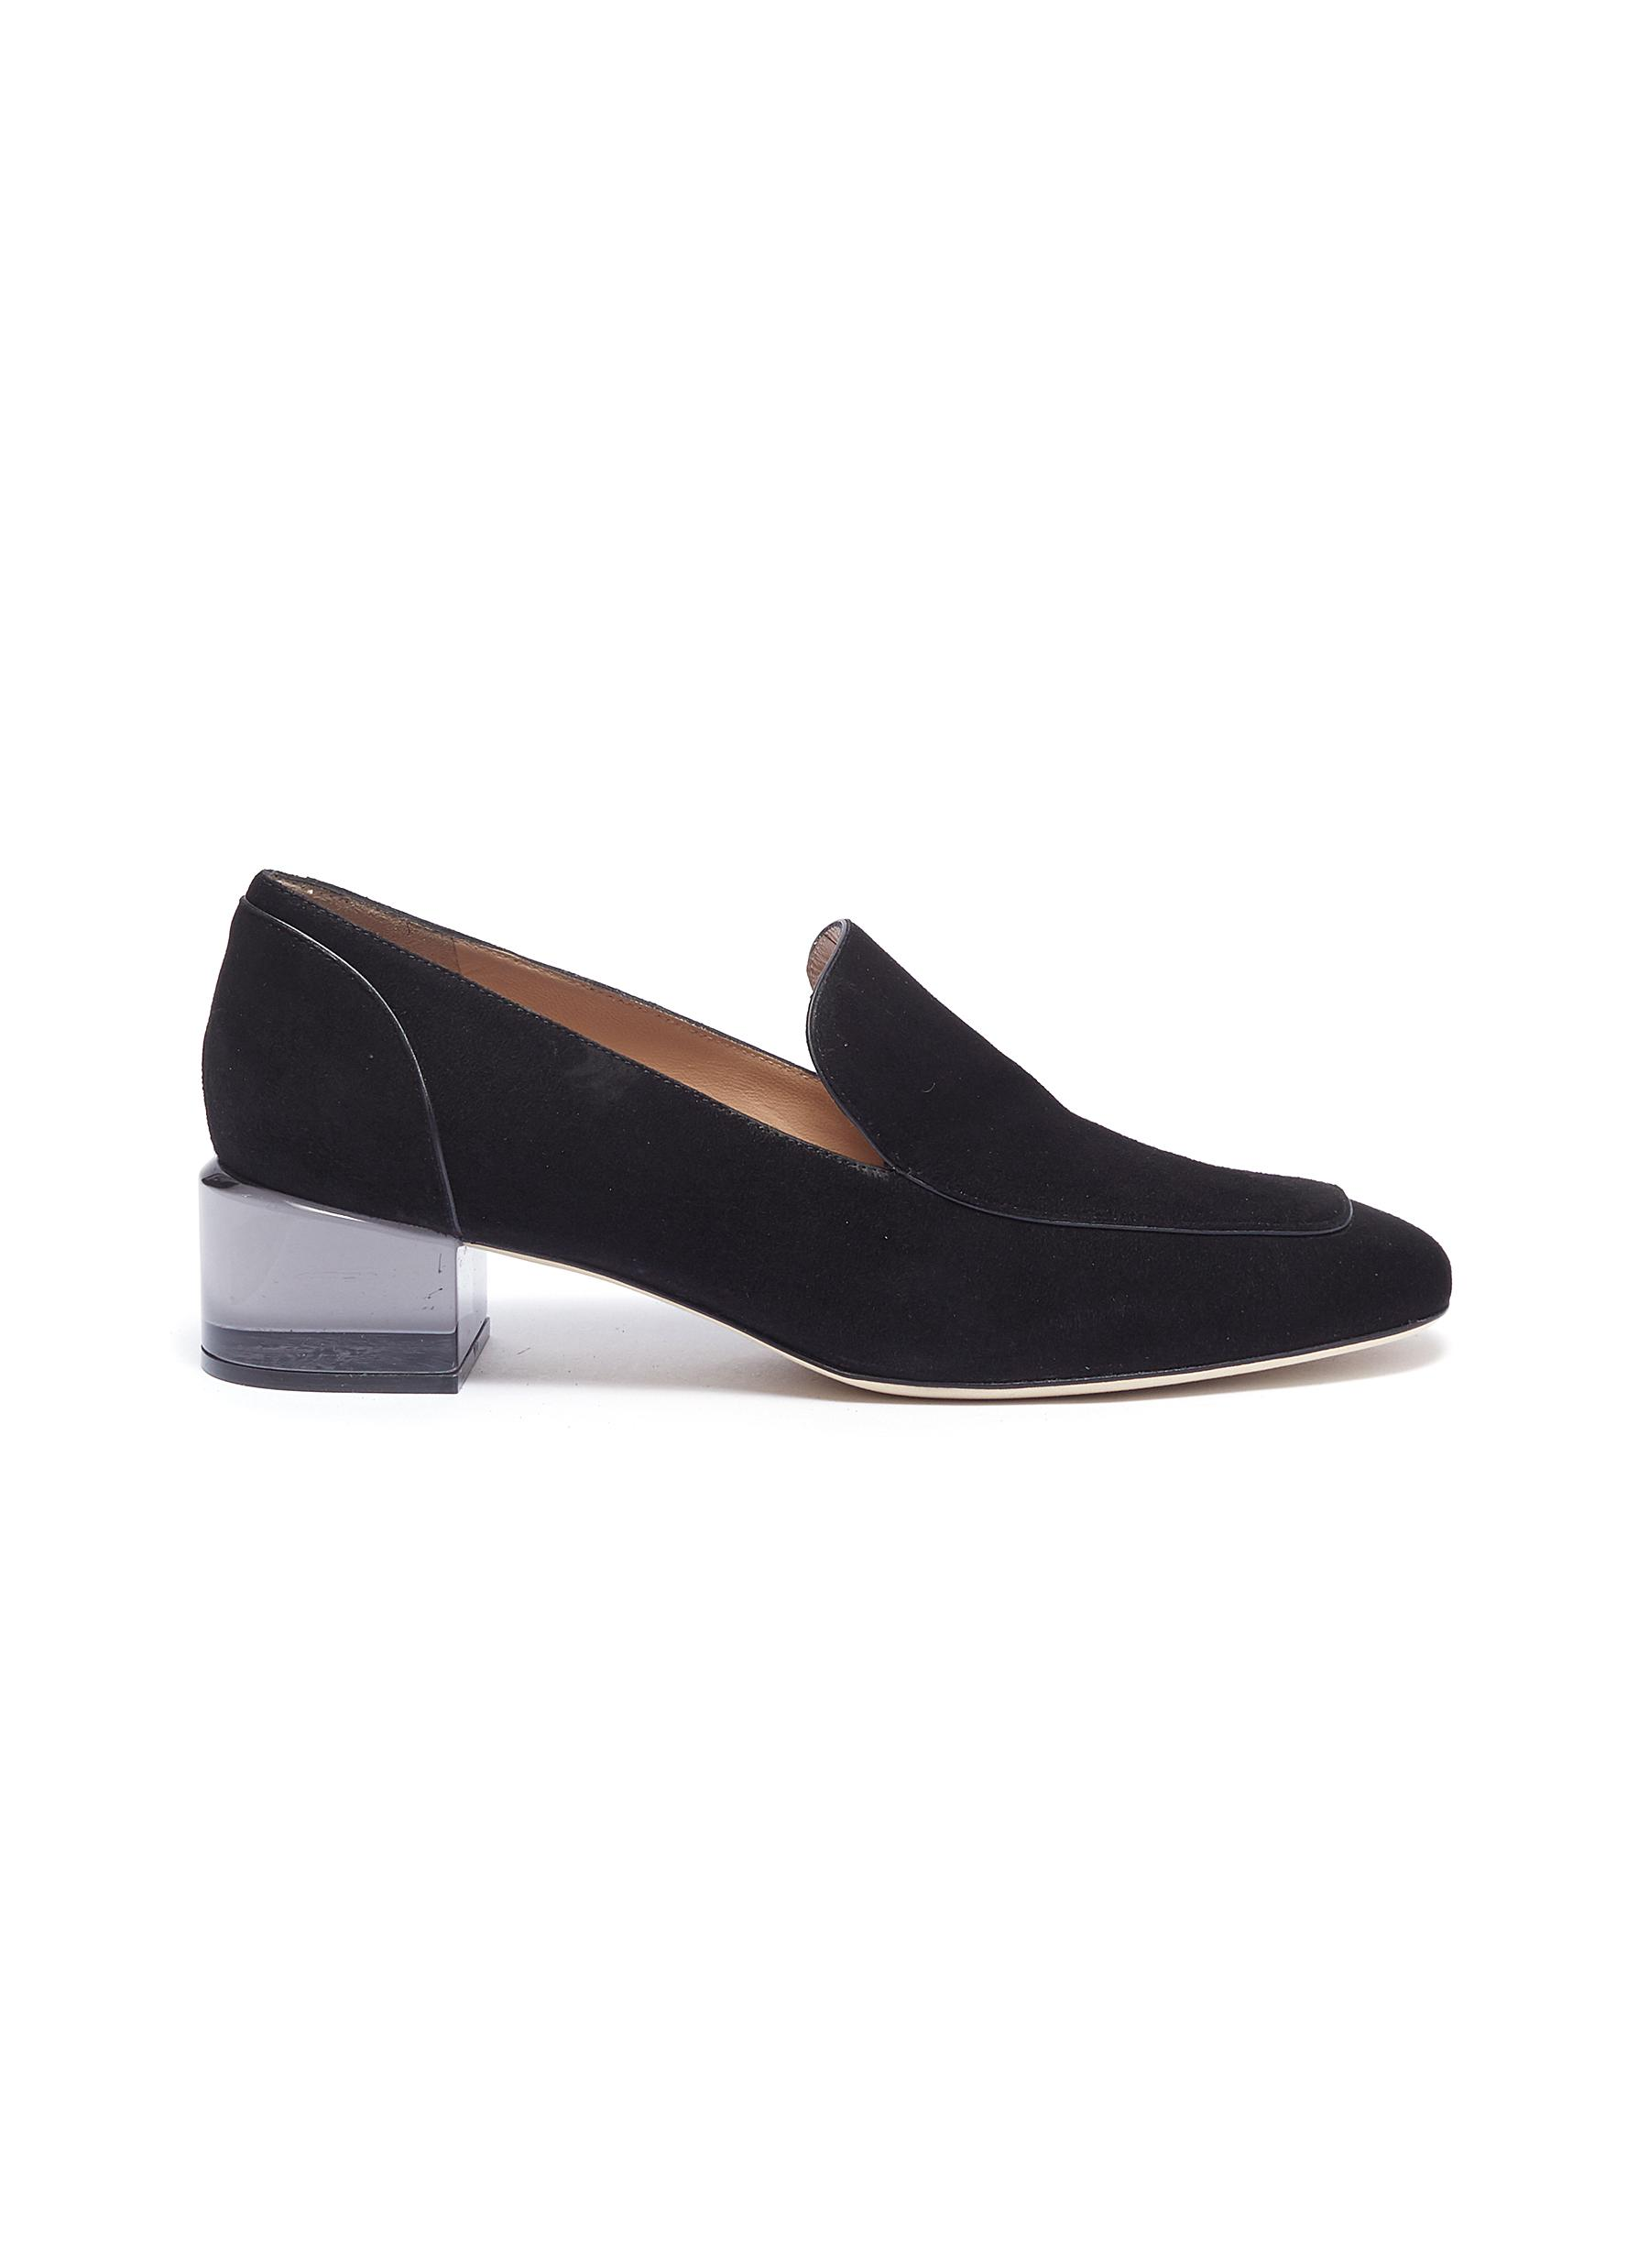 Carmella acrylic heel suede loafer pumps by Stuart Weitzman